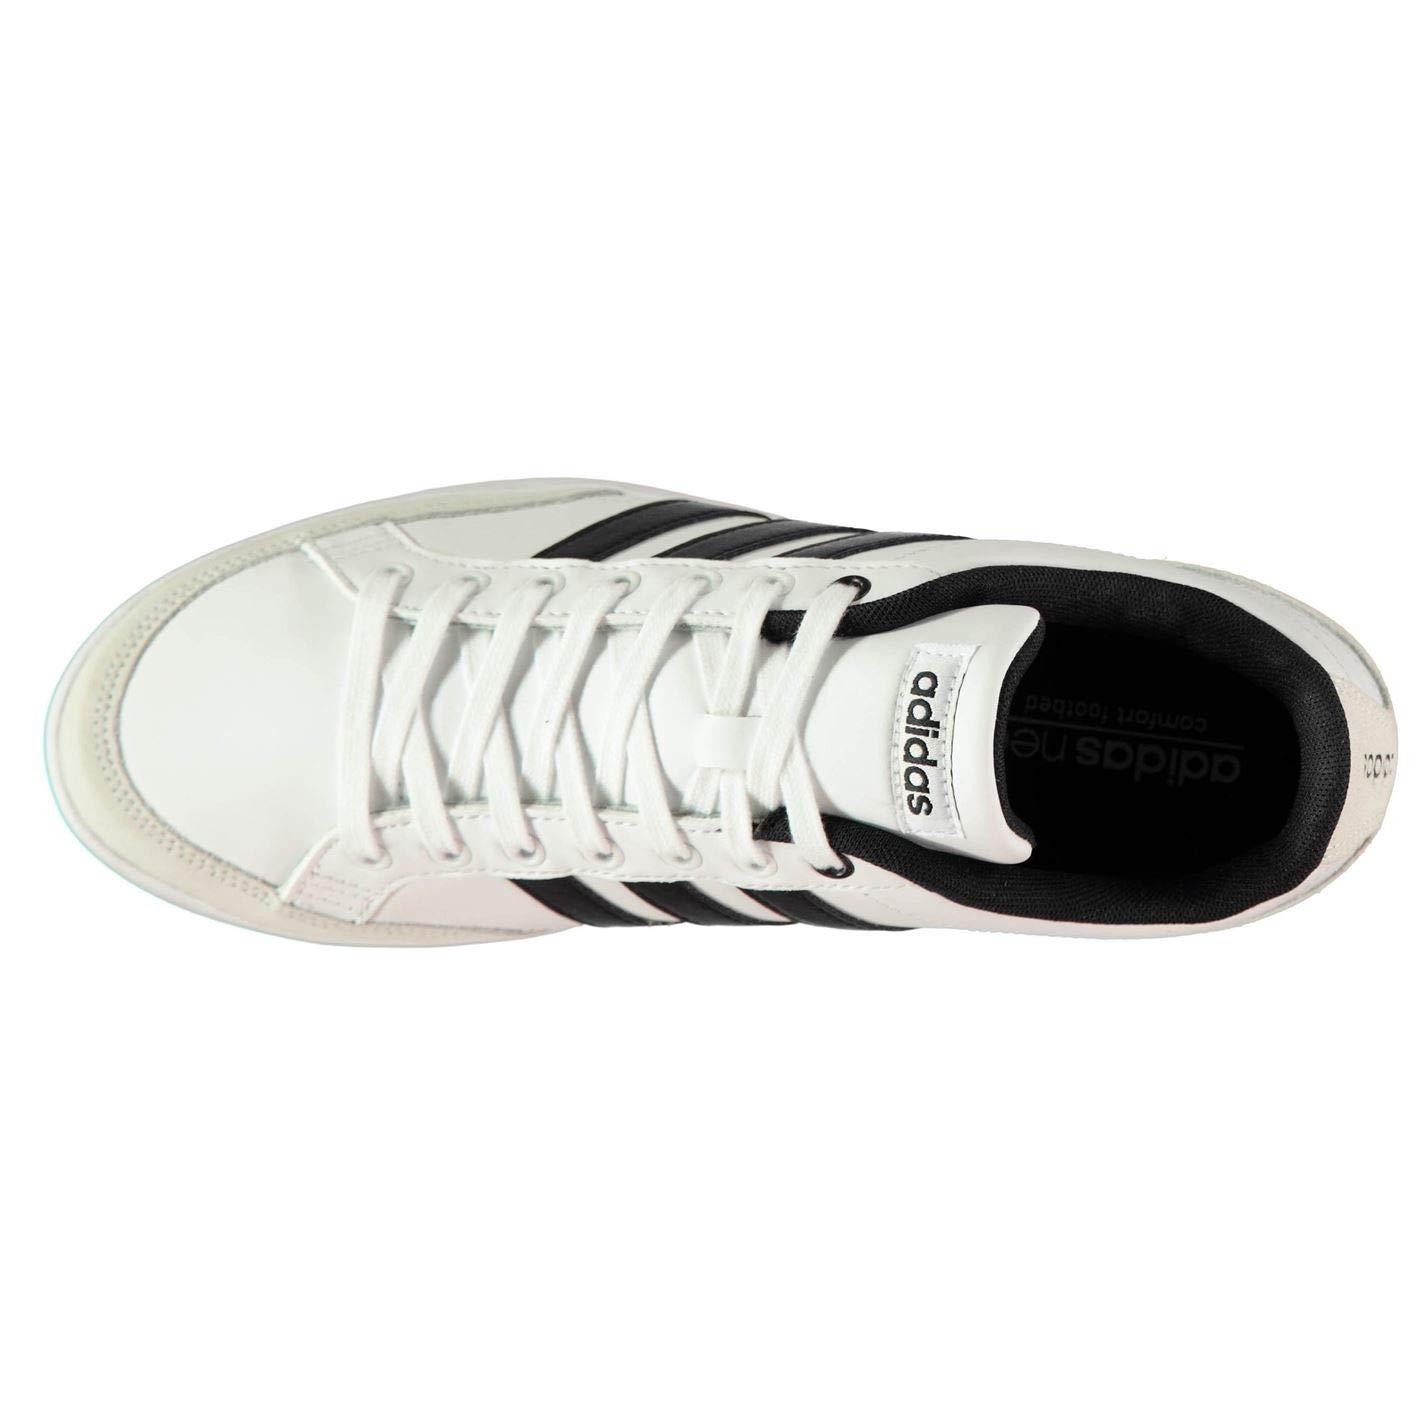 buy online 1b24c a5b95 adidas CAFLAIRE LO BB9705 Unisex-Adult Sports Shoe, White 13.5 UK  Over-Size  Amazon.co.uk  Shoes   Bags